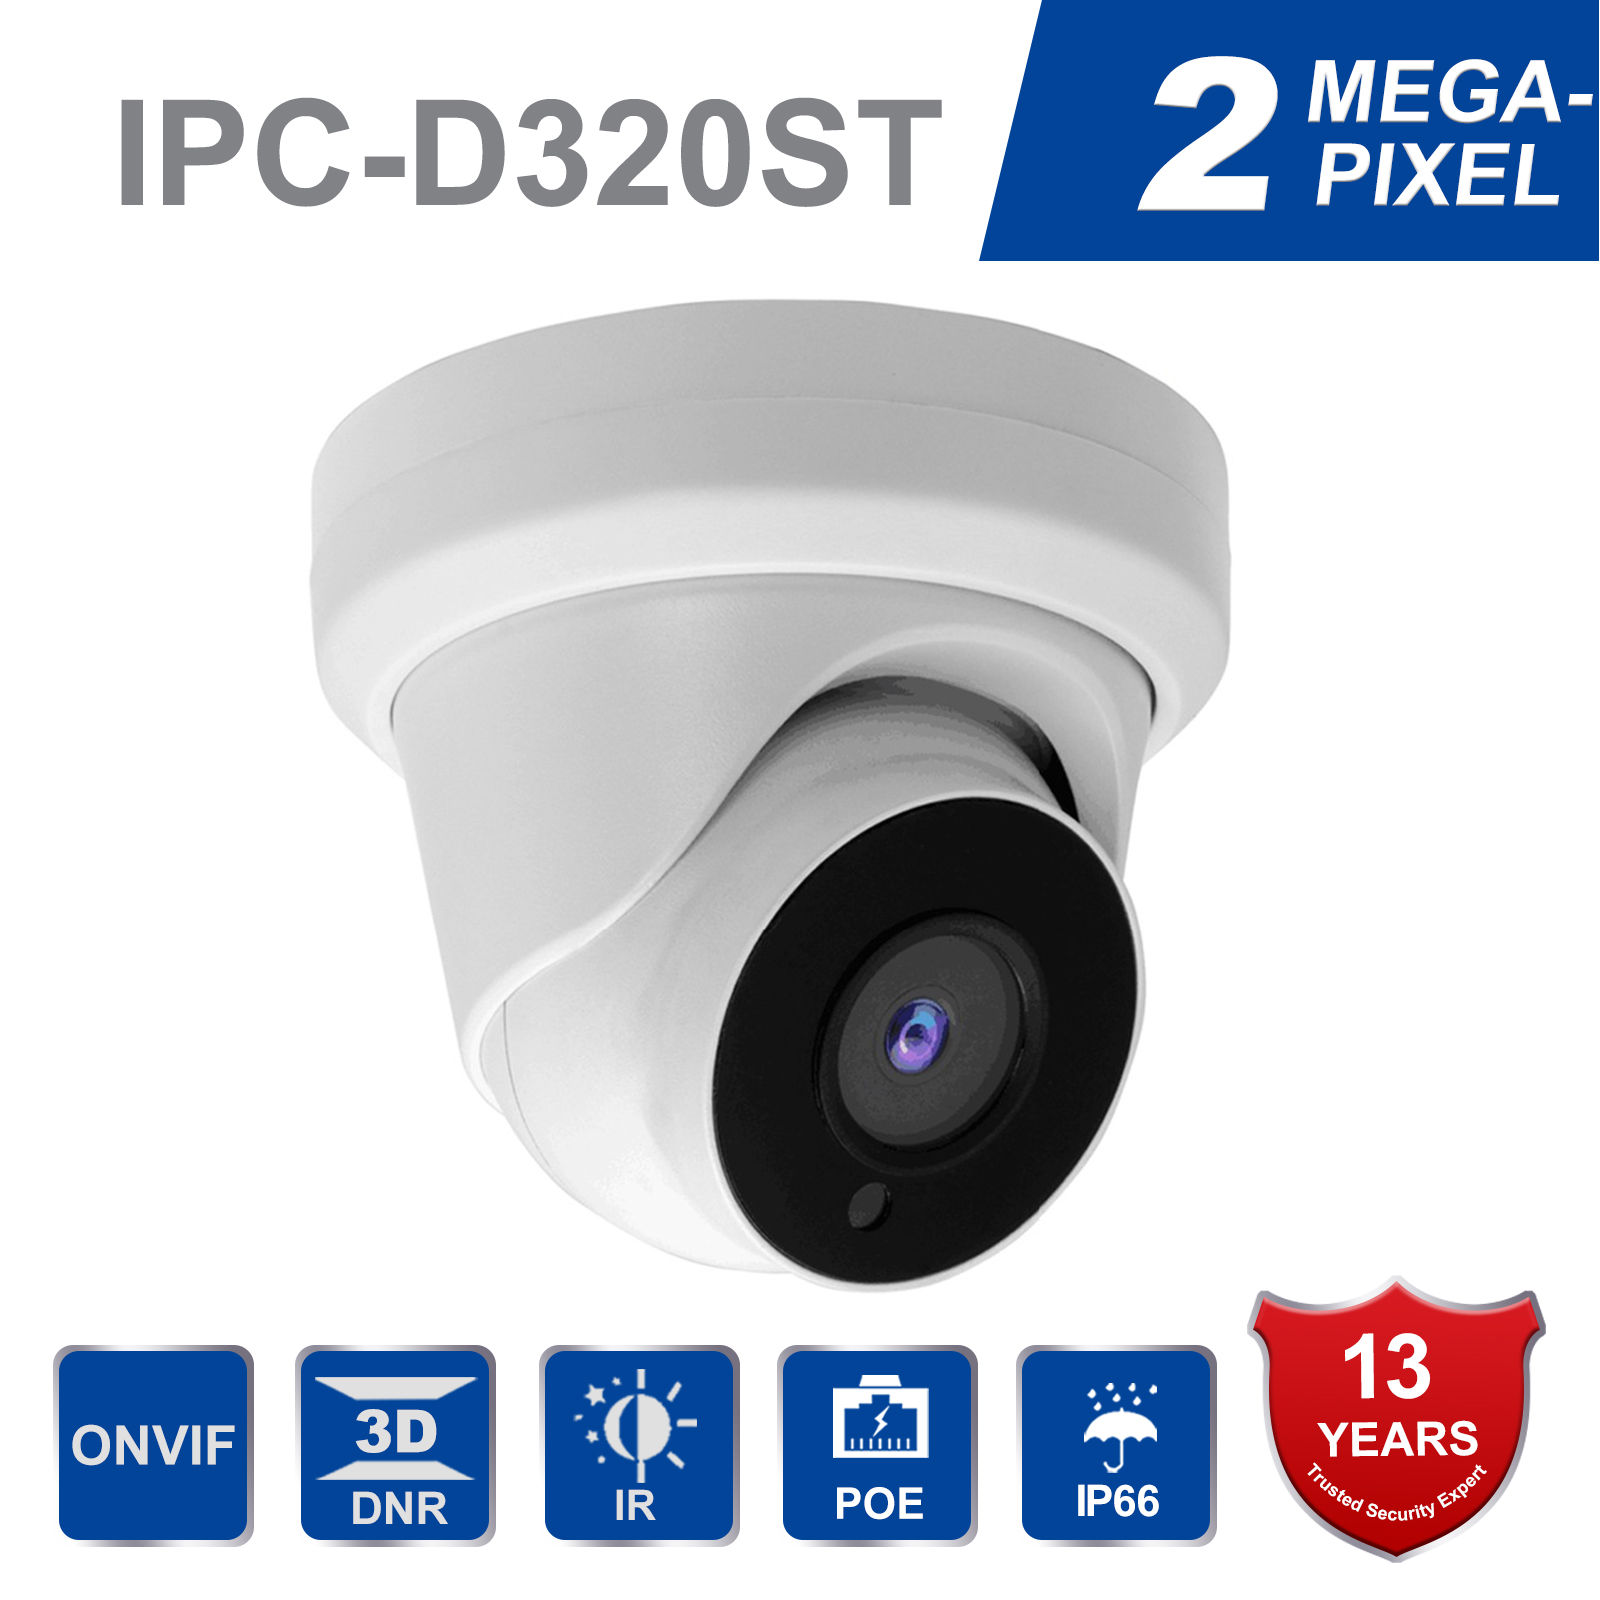 In Stock 2MP Startlight 5X Zoom lens IP Camera POE IP Cam IP66 H265 WDR Plug & Play with Hikvision NVR with Sony CMOS SensorIn Stock 2MP Startlight 5X Zoom lens IP Camera POE IP Cam IP66 H265 WDR Plug & Play with Hikvision NVR with Sony CMOS Sensor